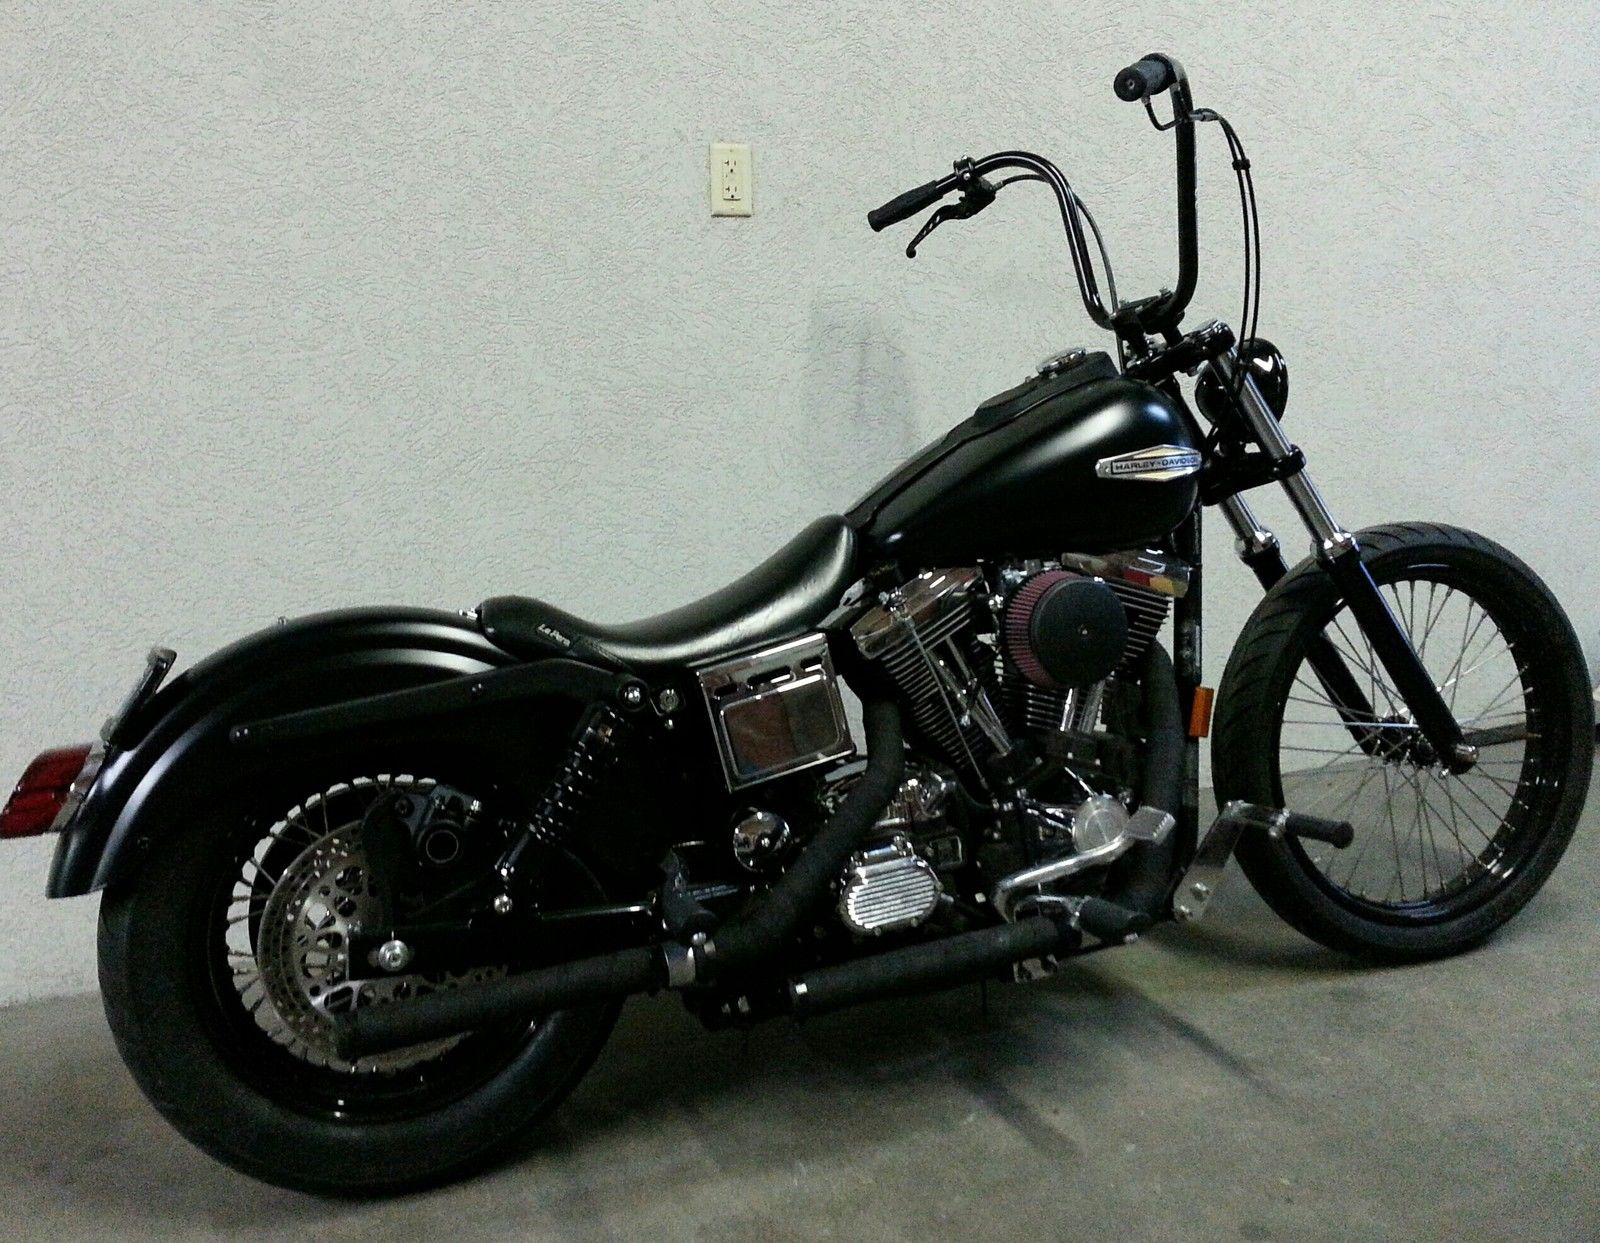 1996 harley dyna fxds lowrider hardcore 034street bob034 bobber chopper 4 1996 fxds wiring diagram trusted wiring diagrams